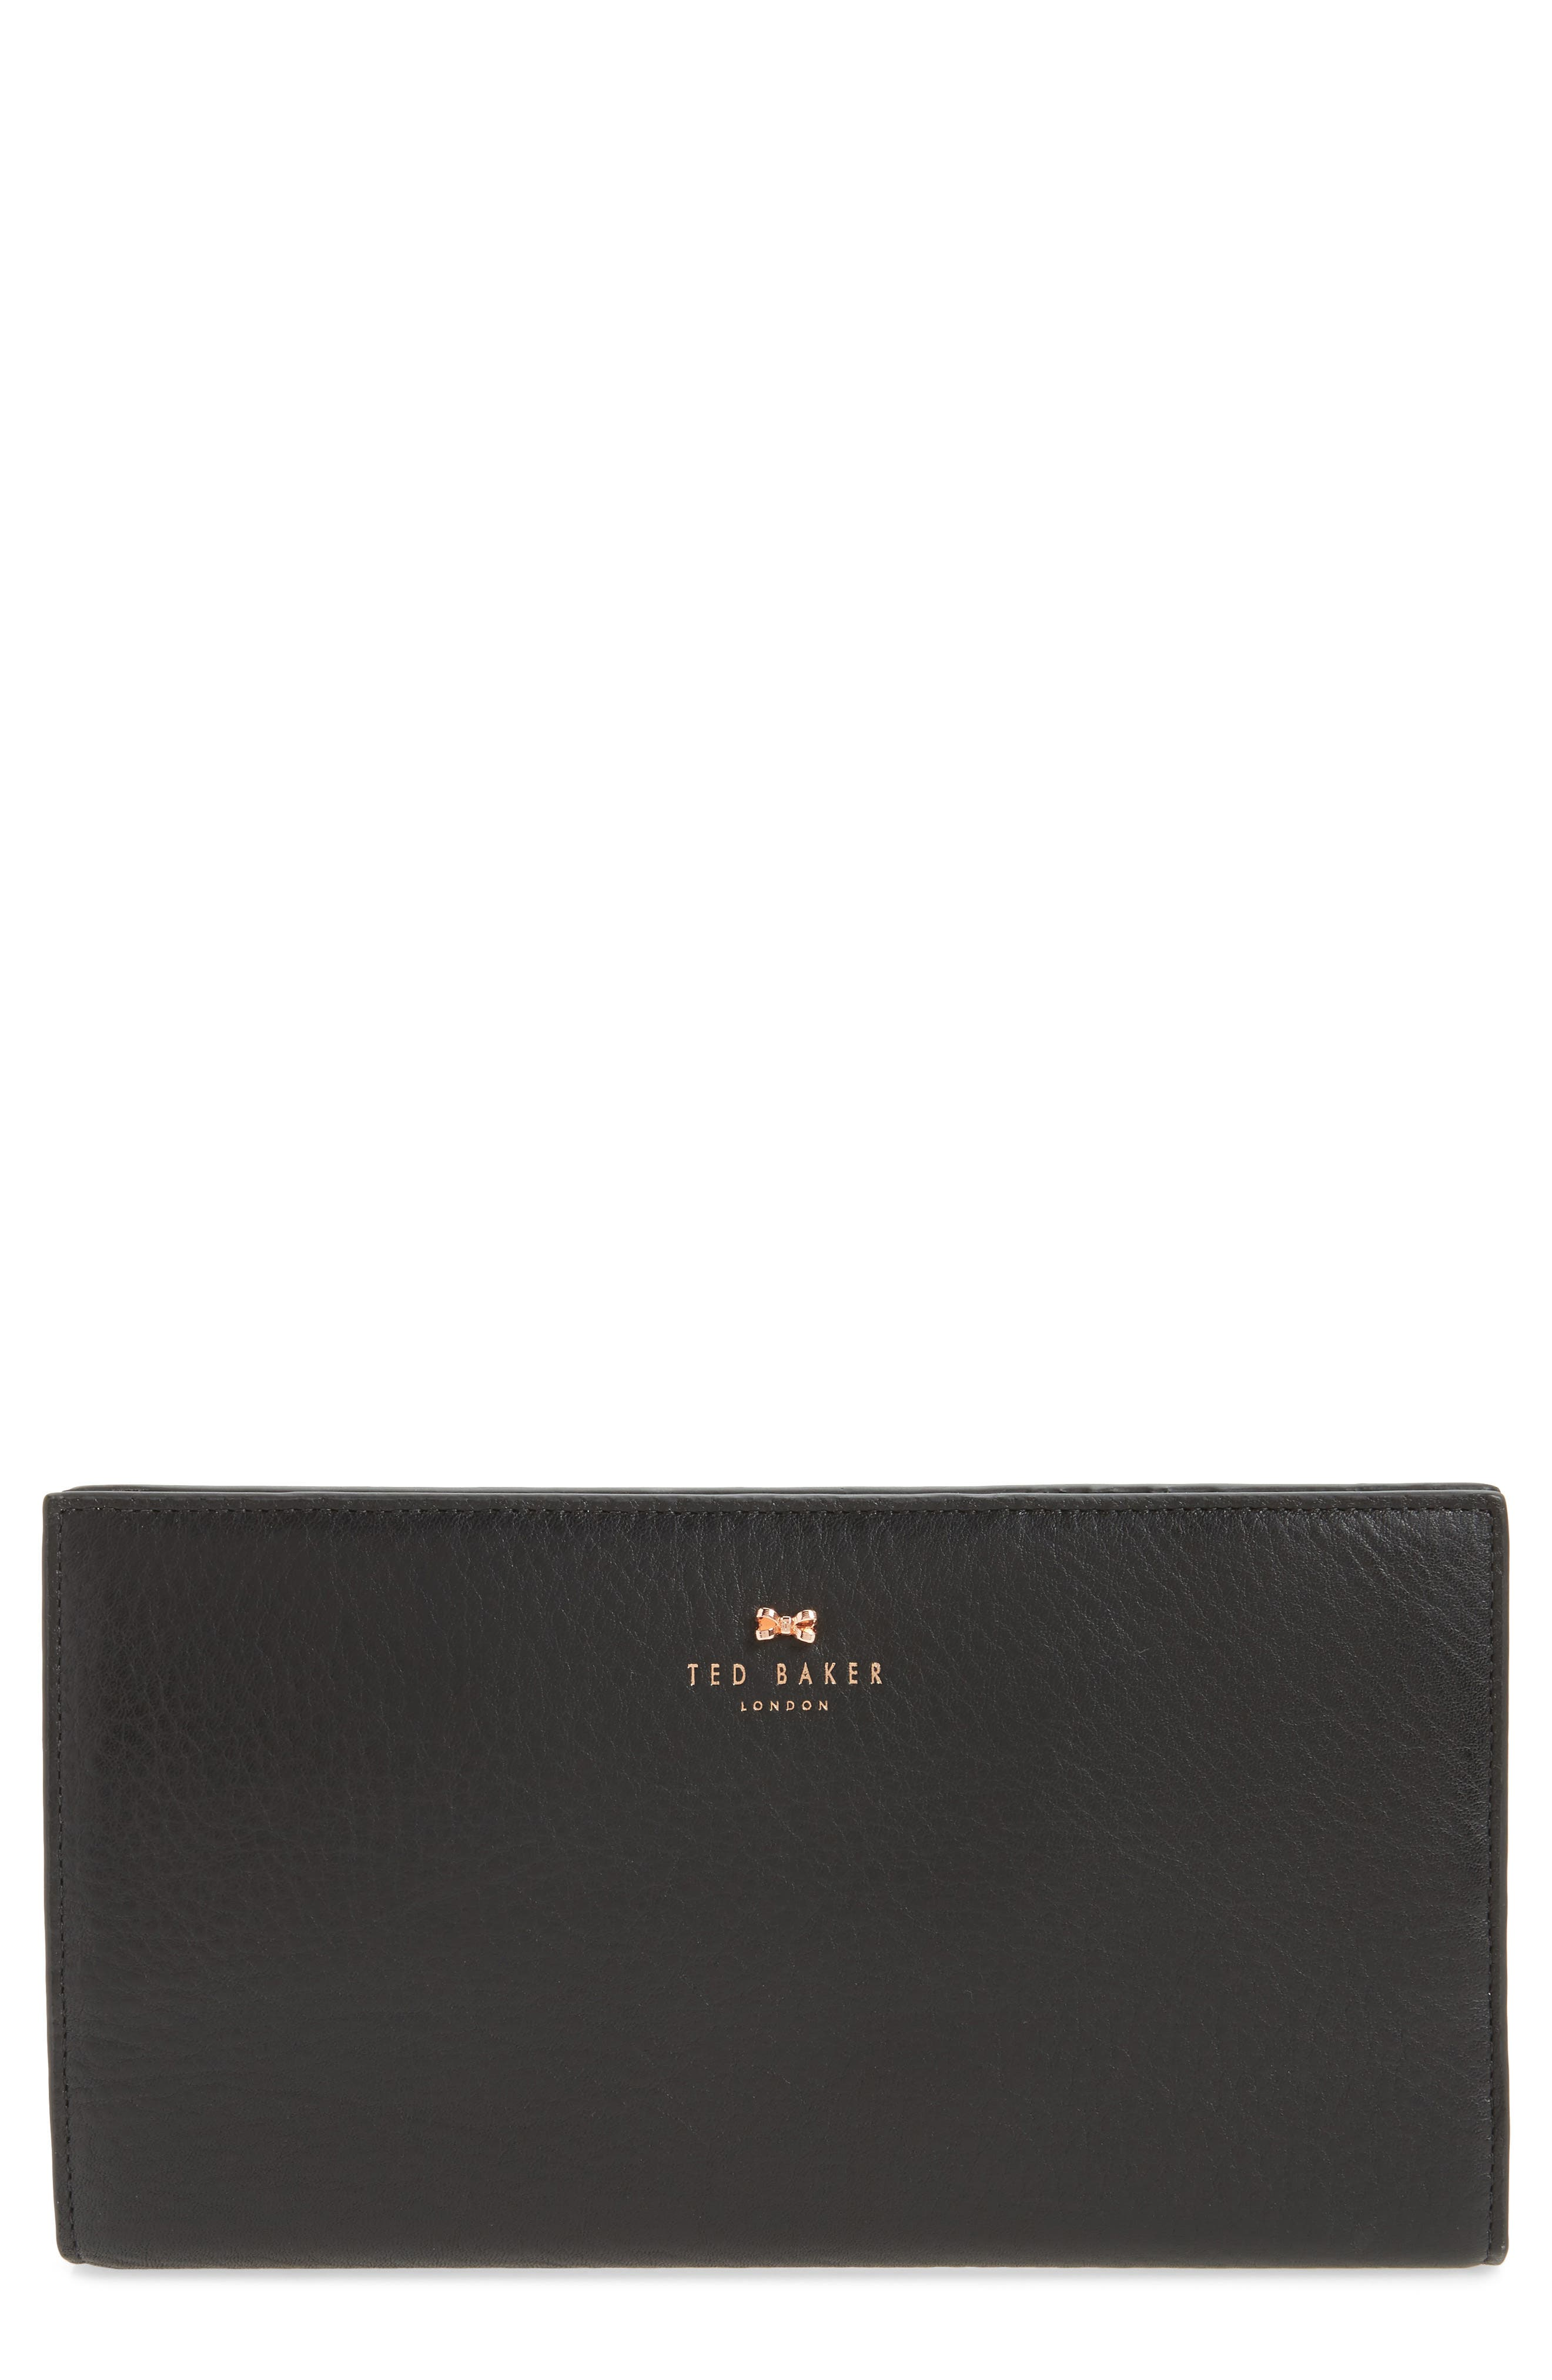 Dolle Leather Travel Wallet,                             Main thumbnail 1, color,                             001